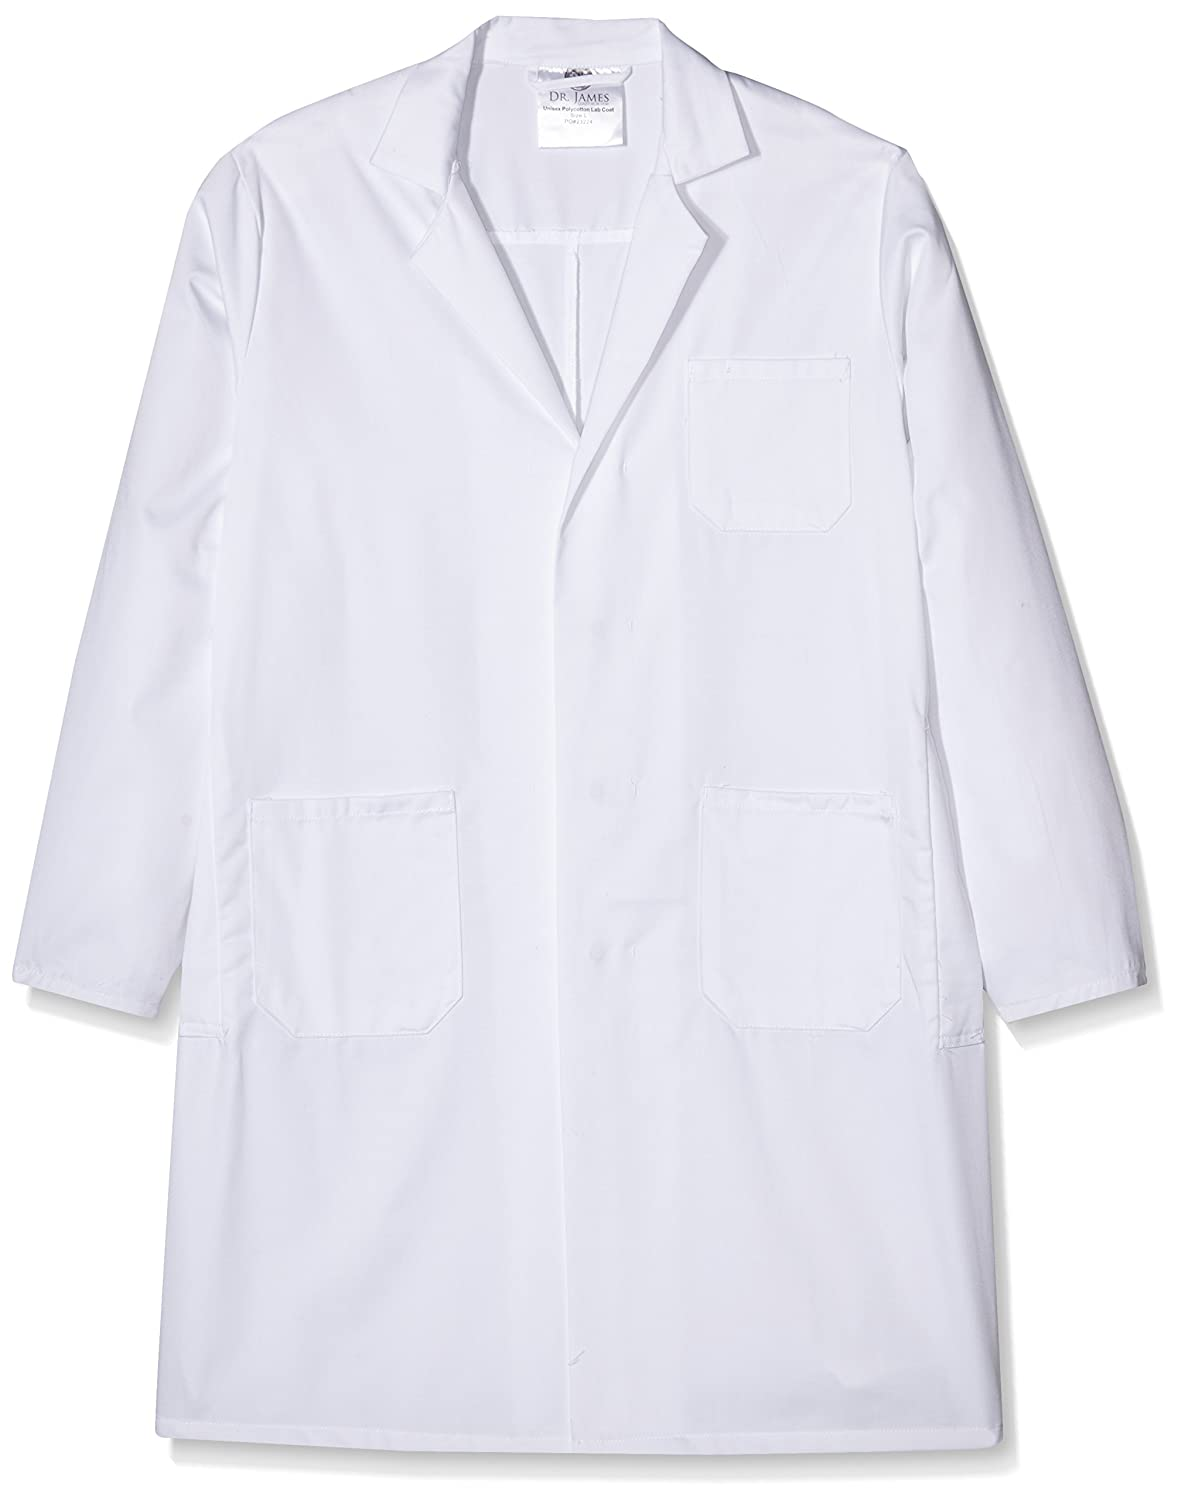 Dr. James SLK-L Unisex Polycotton Lab Coat and Anti-Scratch Safety Glasses, Student Lab Kit, Large, White Labmarc Laboratory Supplies UKVSLK-L